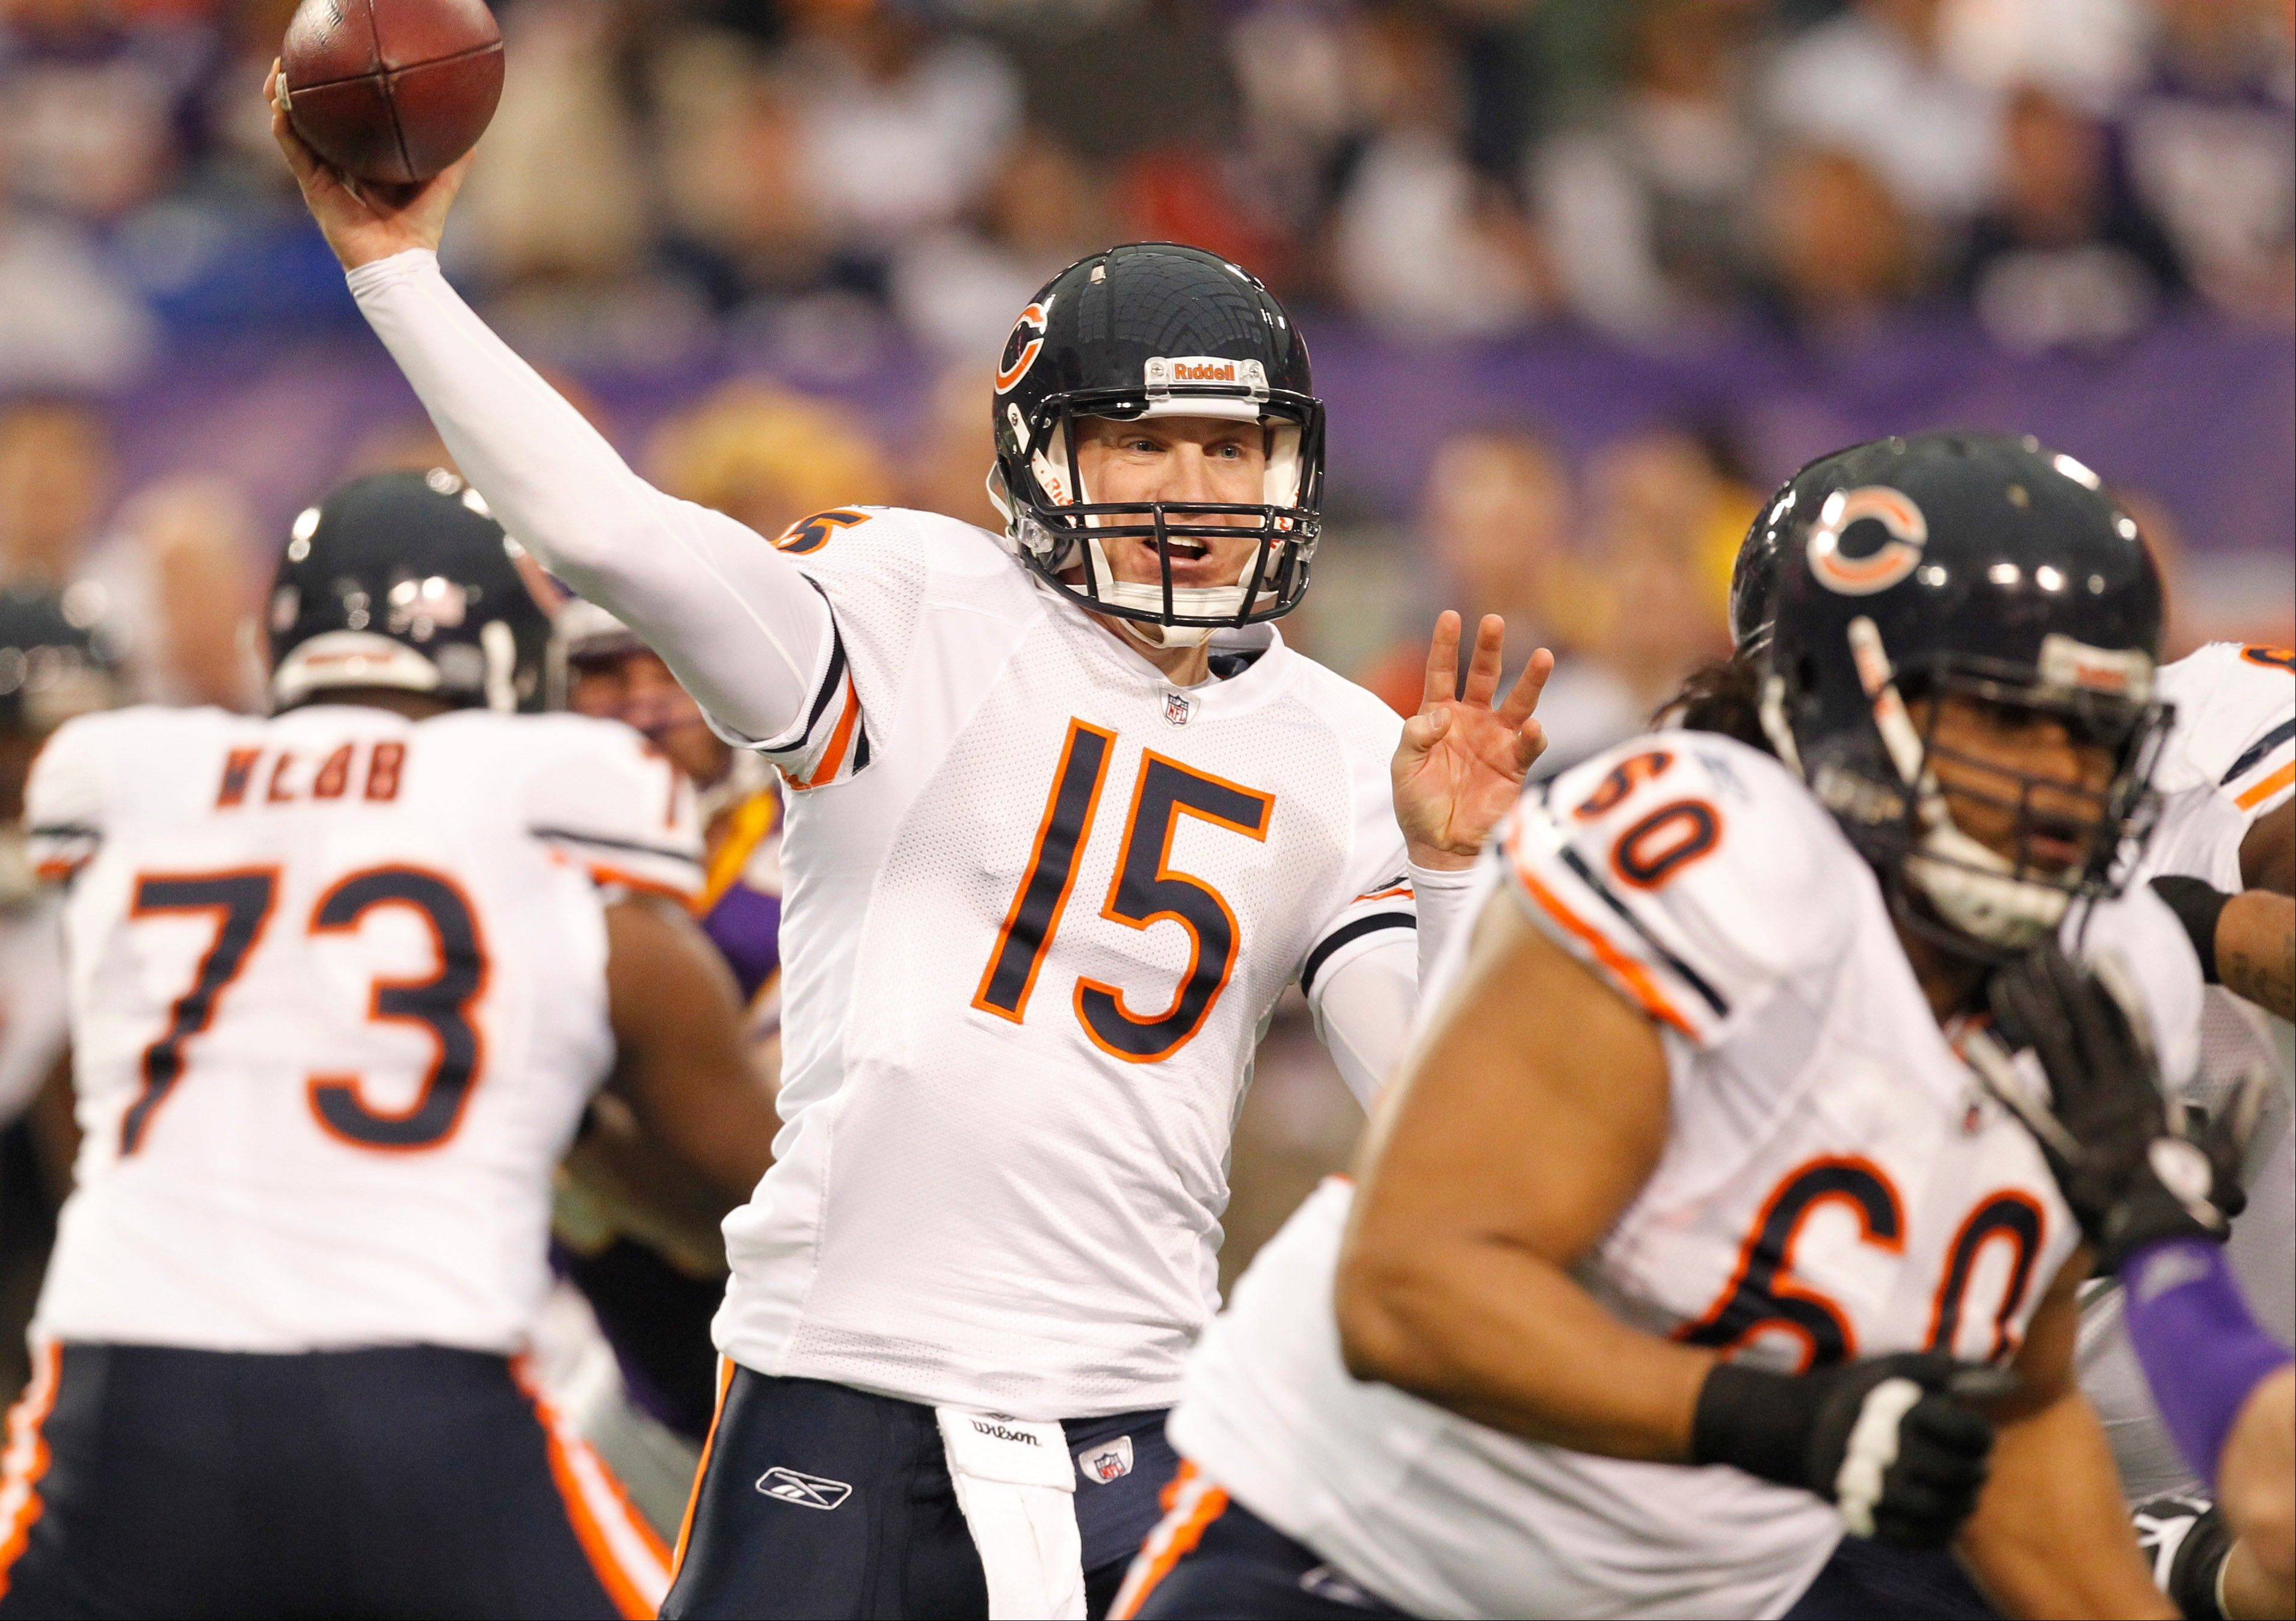 Quarterback Josh McCown, here working against the Minnesota Vikings last January, is back with the Bears after spending the season coaching high school football.